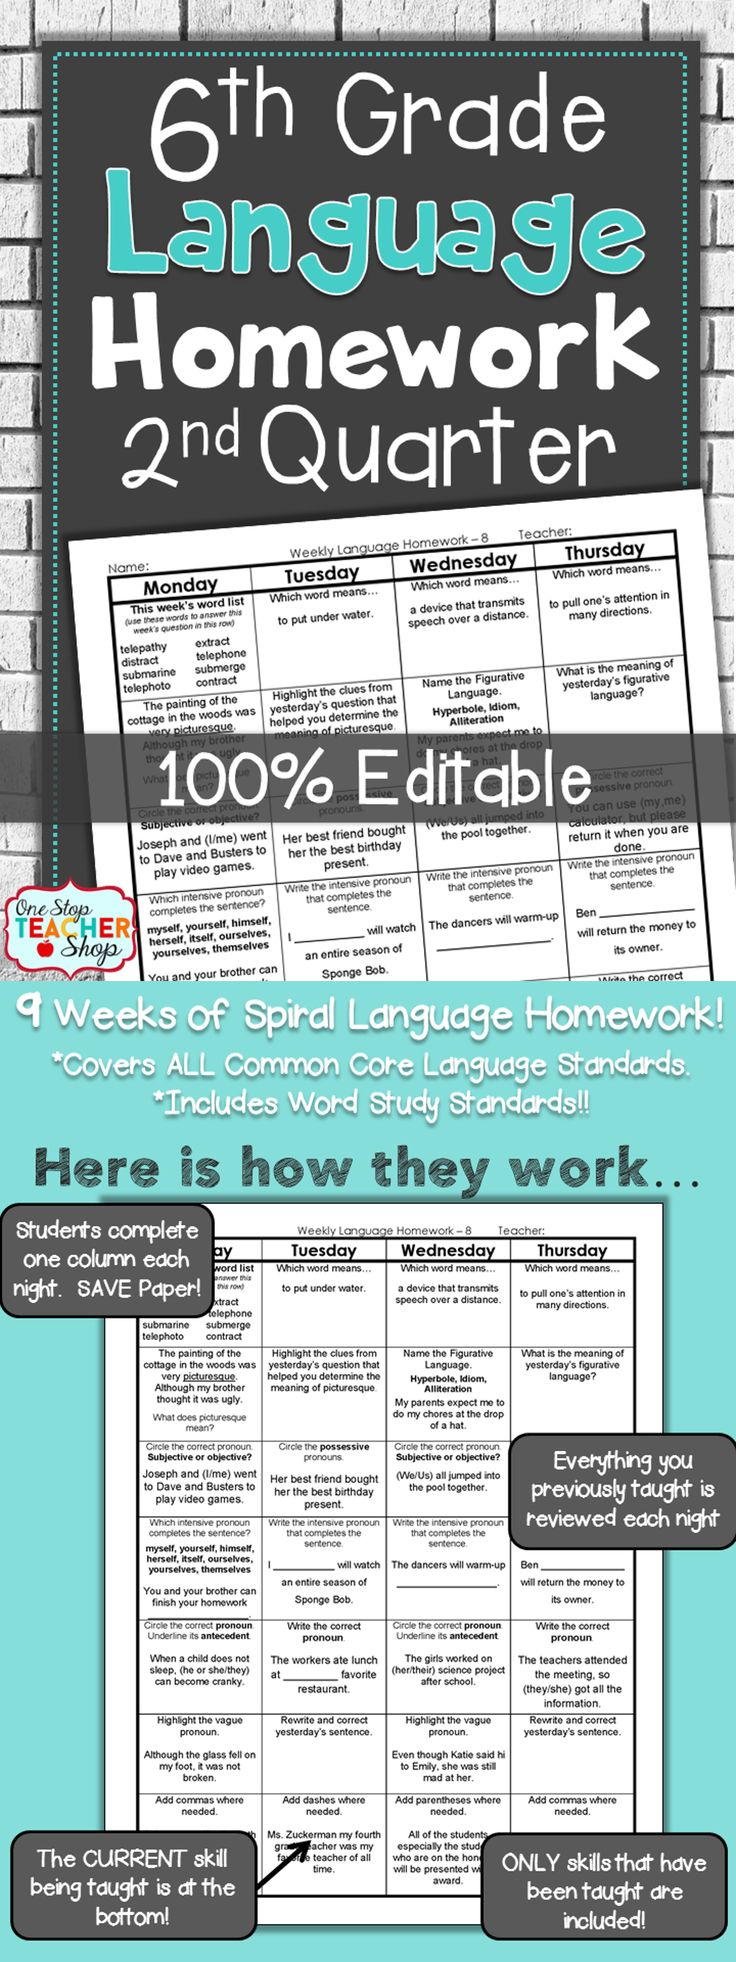 Spiral Language Homework, Bell Ringers, or Daily Review for the ENTIRE 2nd Quarter of SIXTH GRADE! Aligned with 6th grade Common Core Language standards {Grammar & Word Study}. These sheets are 100% EDITABLE, and come with answer keys. Paid